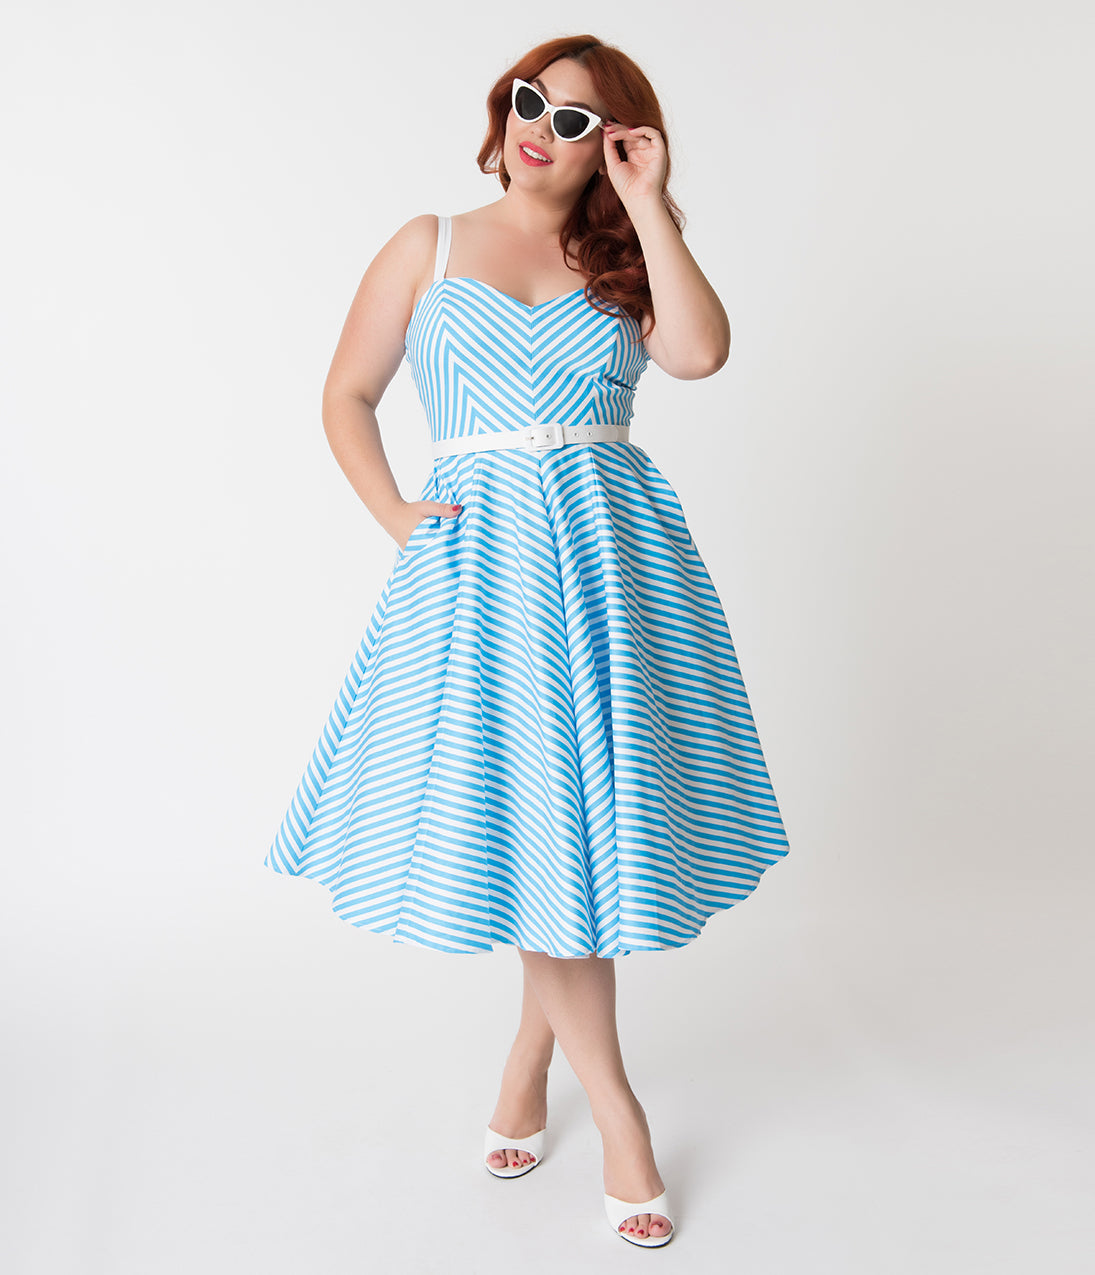 Pin Up Dresses | Pin Up Clothing Vixen By Micheline Pitt Plus Size Blue Chevron Stripe Dollface Swing Dress $152.00 AT vintagedancer.com